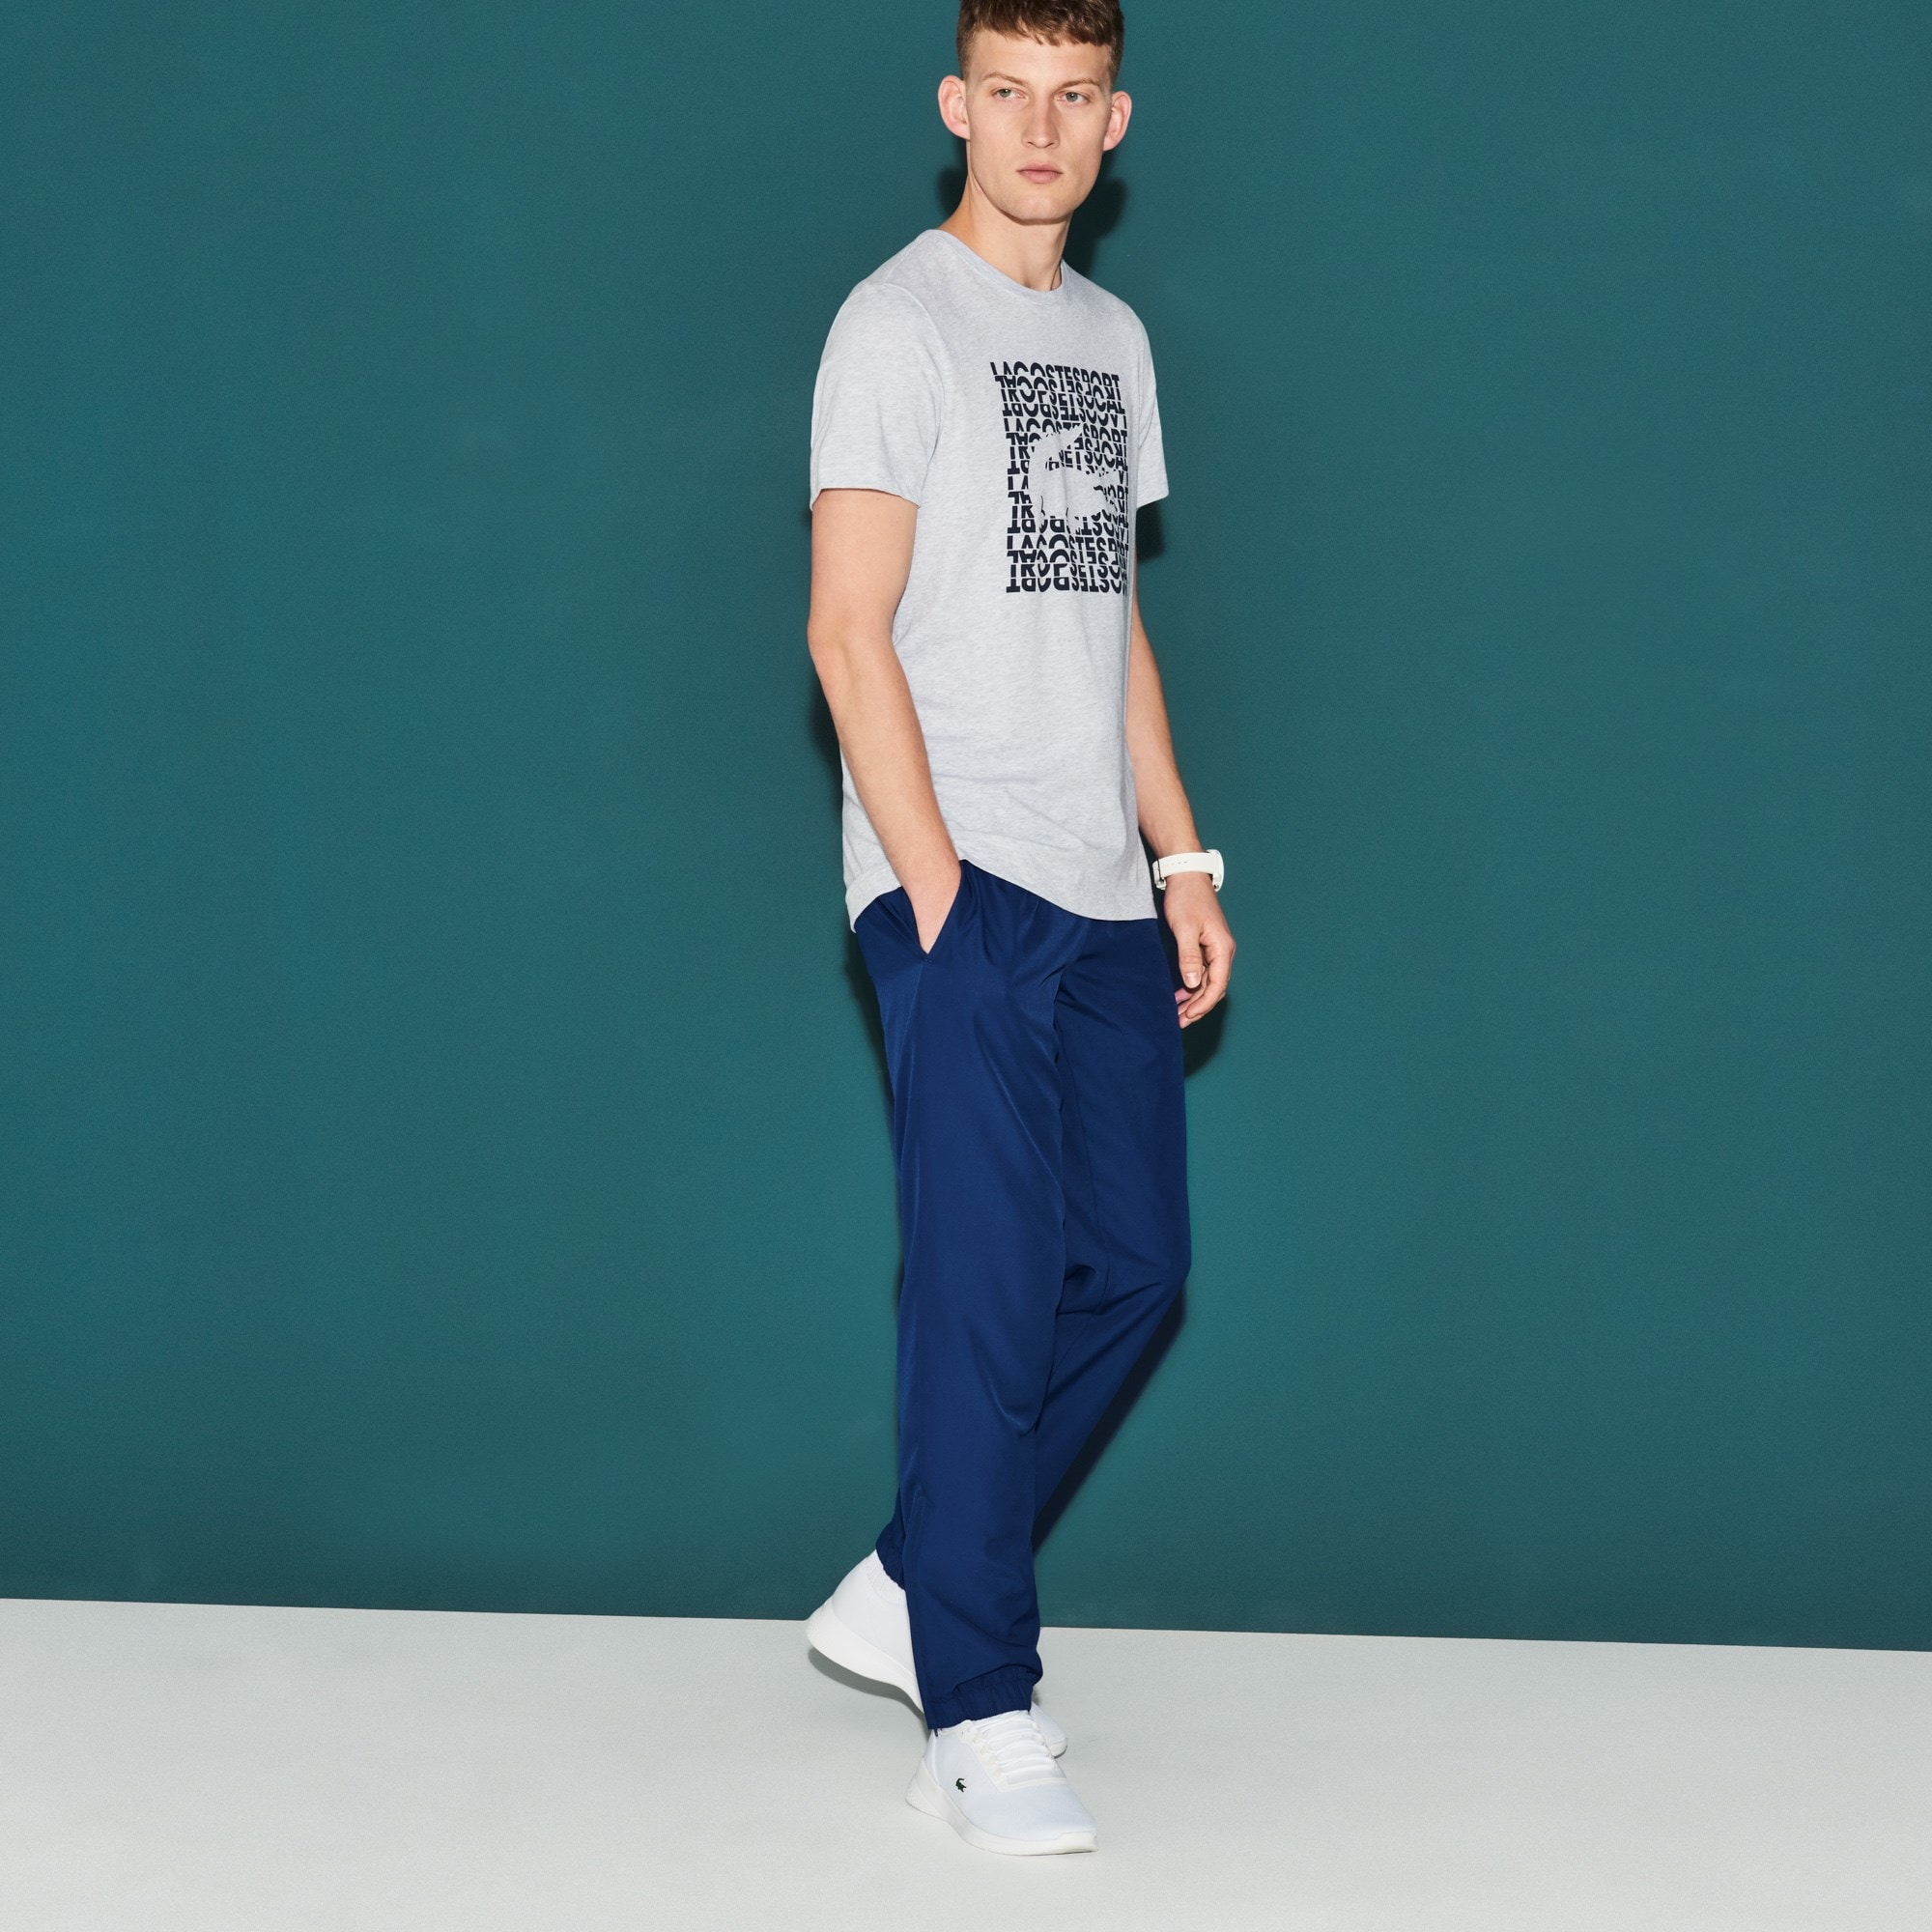 Men's Lacoste SPORT Taffeta Tennis Sweatpants